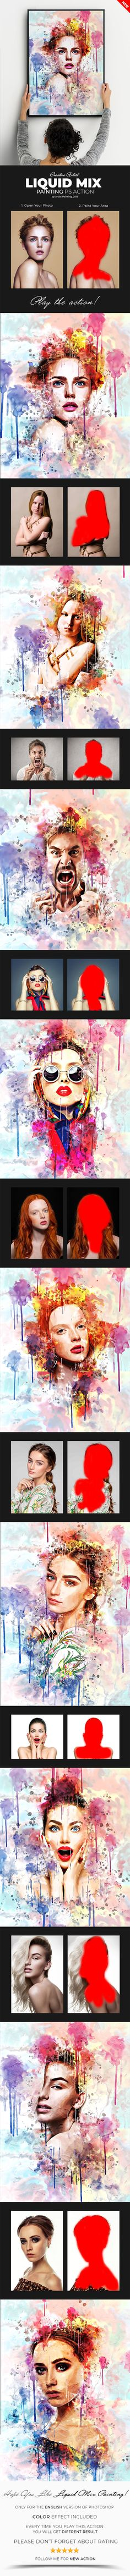 Buy Liquid Mix Painting Photoshop Action by Artist-Painting on GraphicRiver. Liquid Mix Painting Photoshop Action Liquid Mix Painting Photoshop Action for photographers and graphic designers. Effects Photoshop, Photoshop Cs5, Photoshop Design, Photoshop Tutorial, Photoshop Actions For Photographers, Photoshop Photos, Photography Tools, Photoshop Photography, Photoshop Express